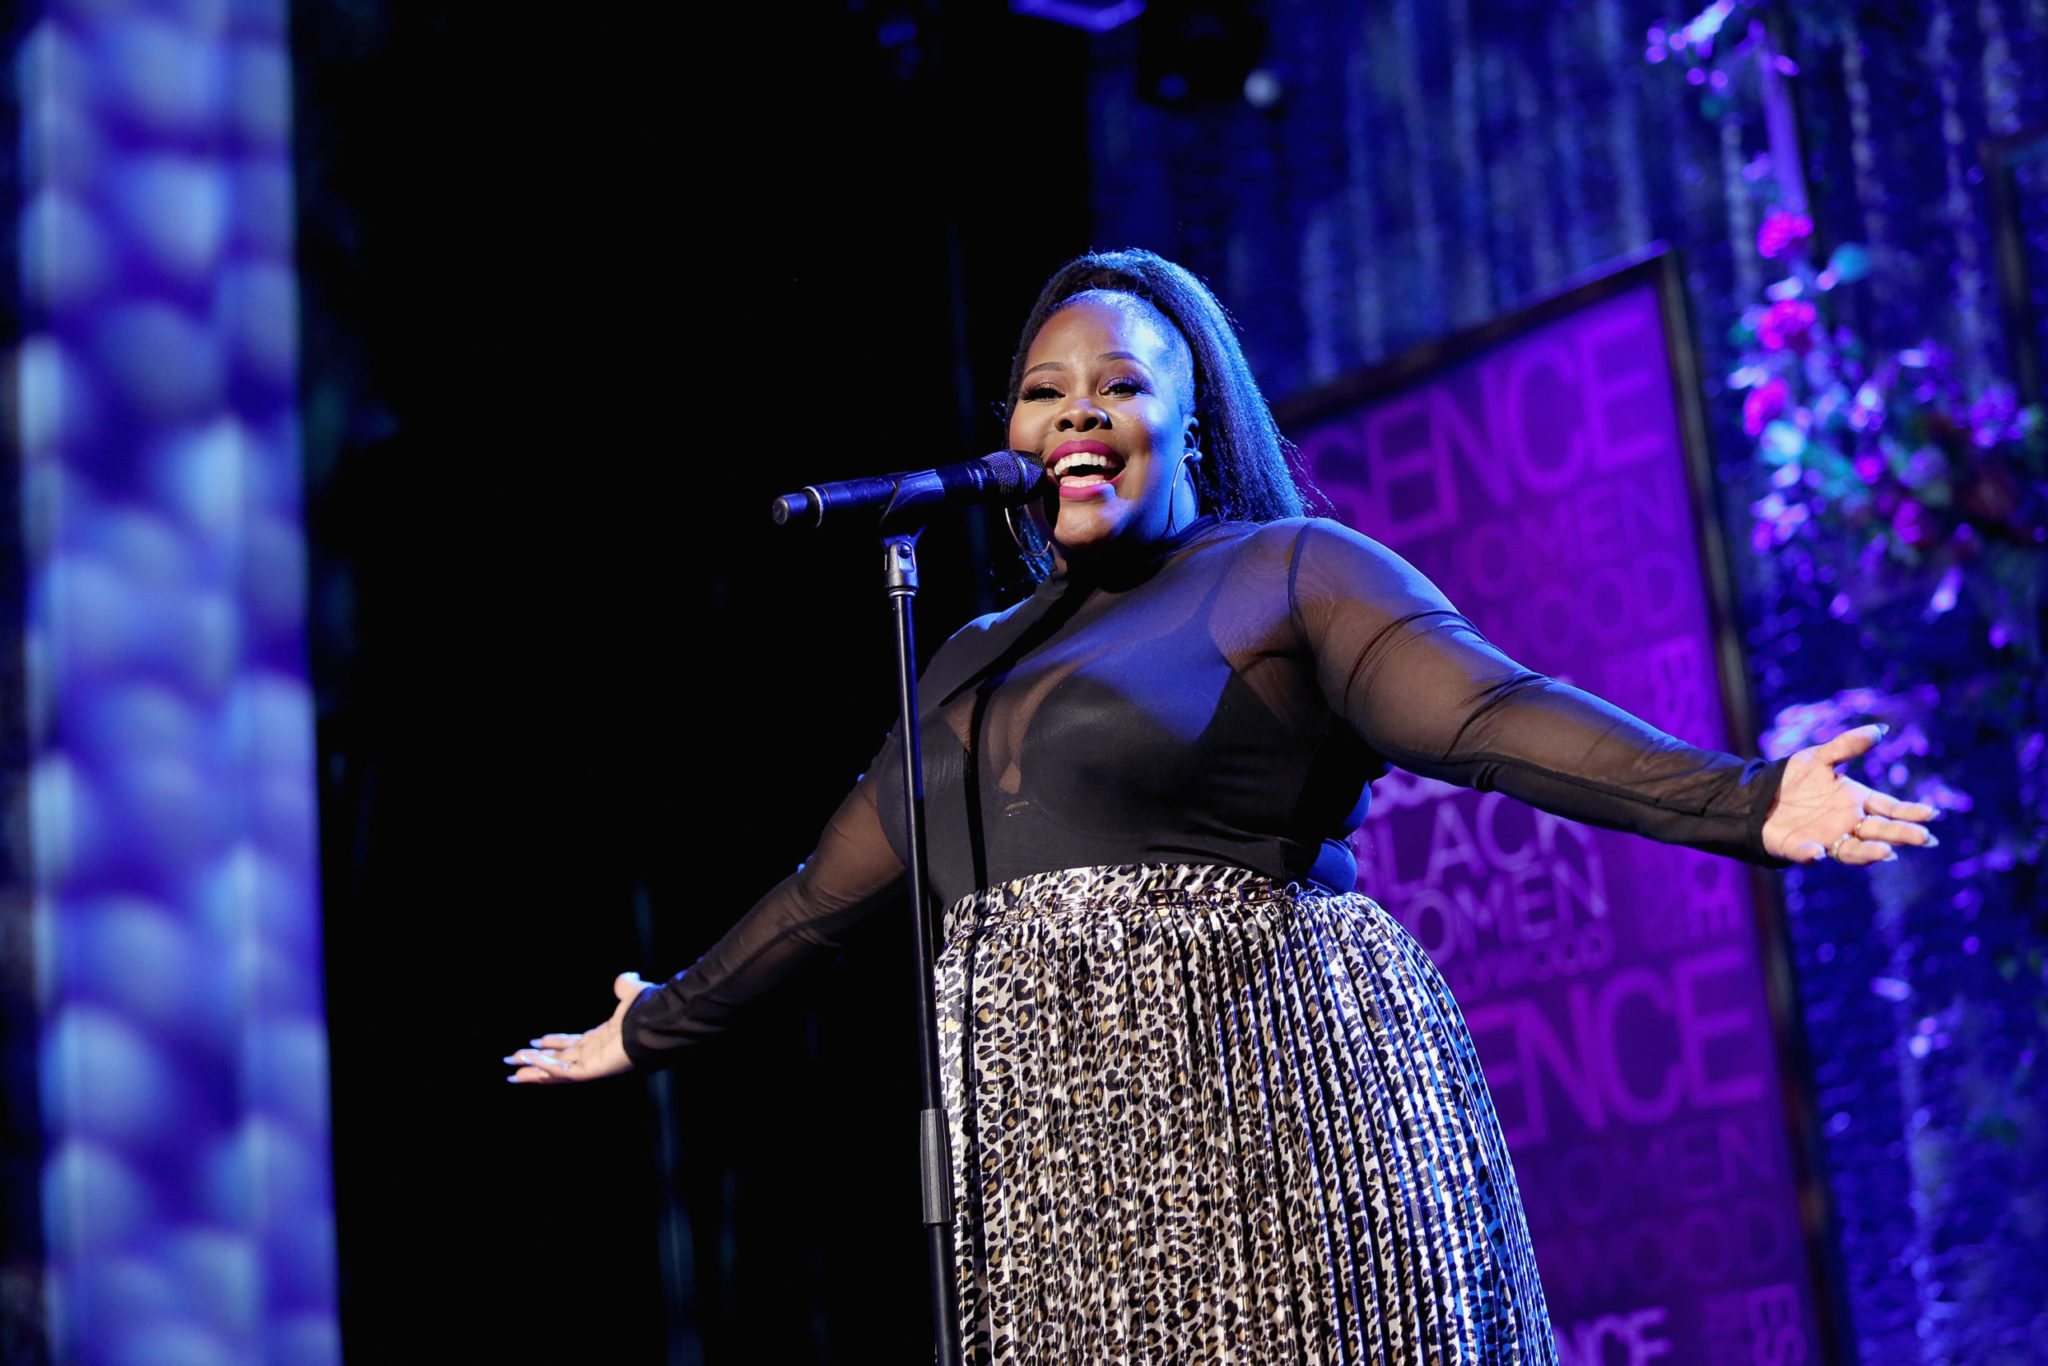 Glee star Amber Riley reveals disgusting attack by vile Trump supporter who spat on her car